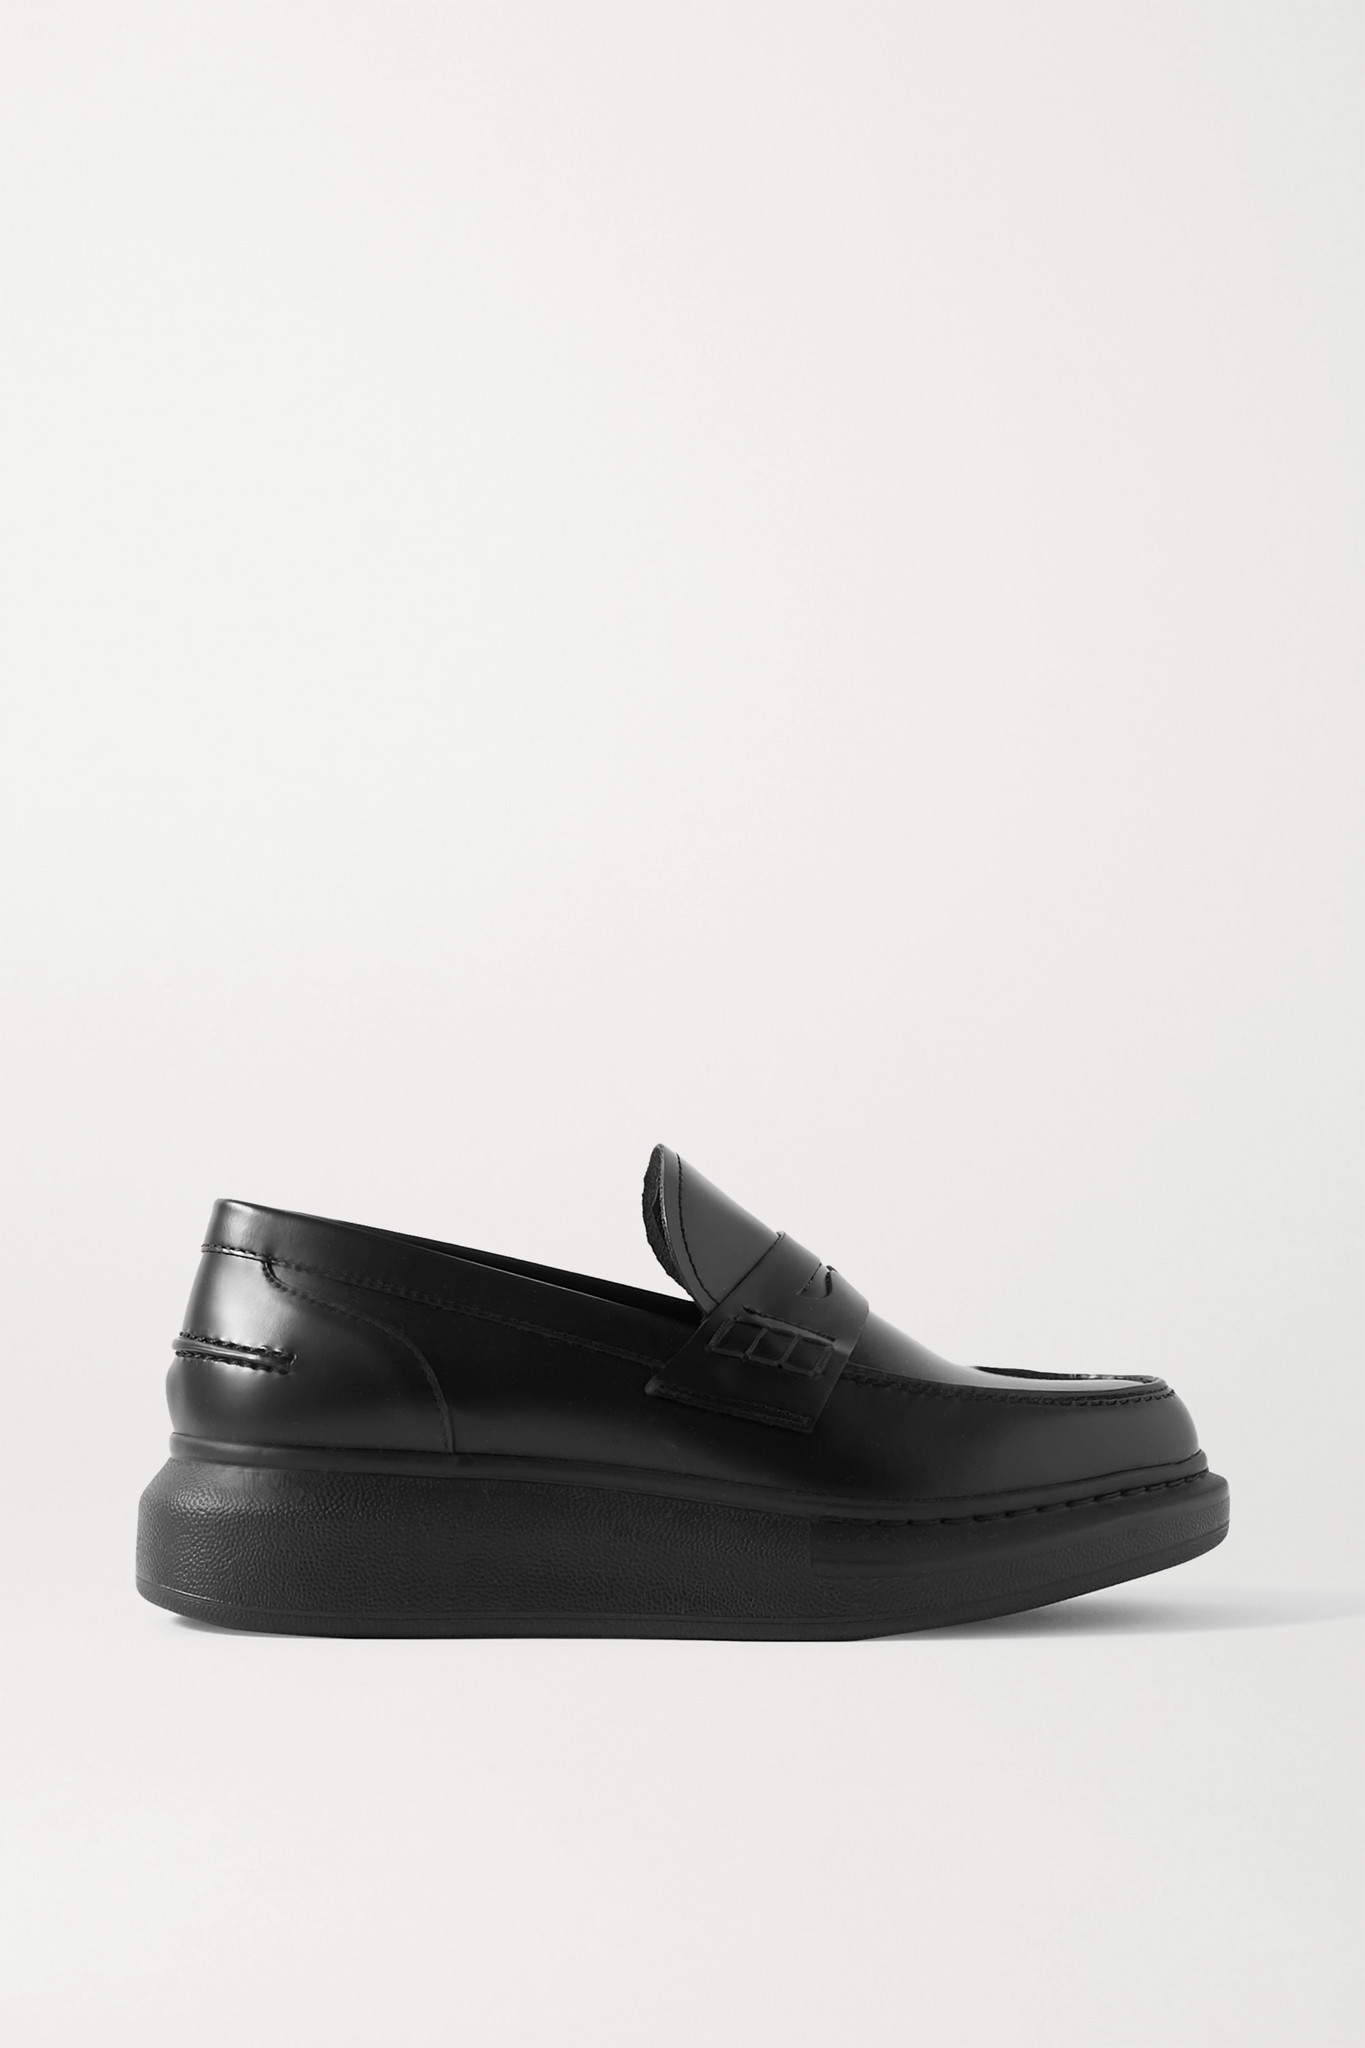 ALEXANDER MCQUEEN - Glossed-leather Exaggerated-sole Loafers - Black - IT35